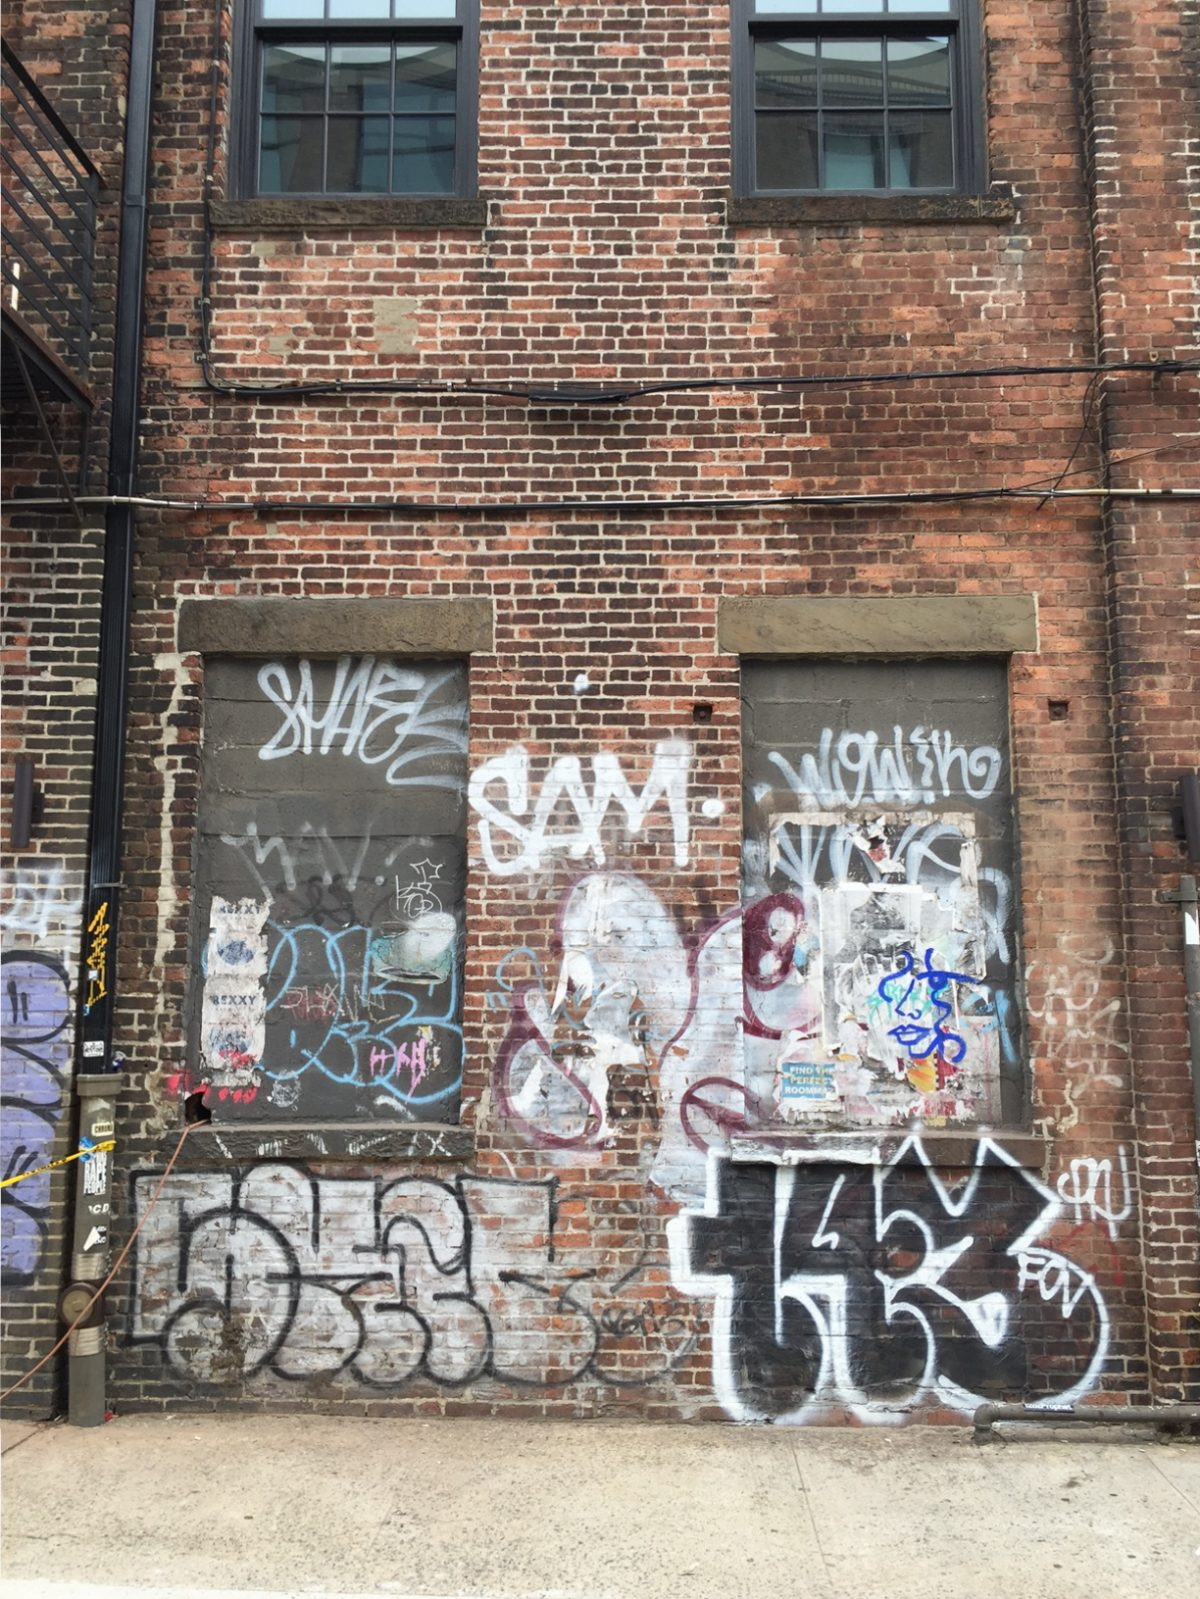 Graffiti and street art in new york is a controversial subject among many graffiti is unsanctioned by a government or property owner